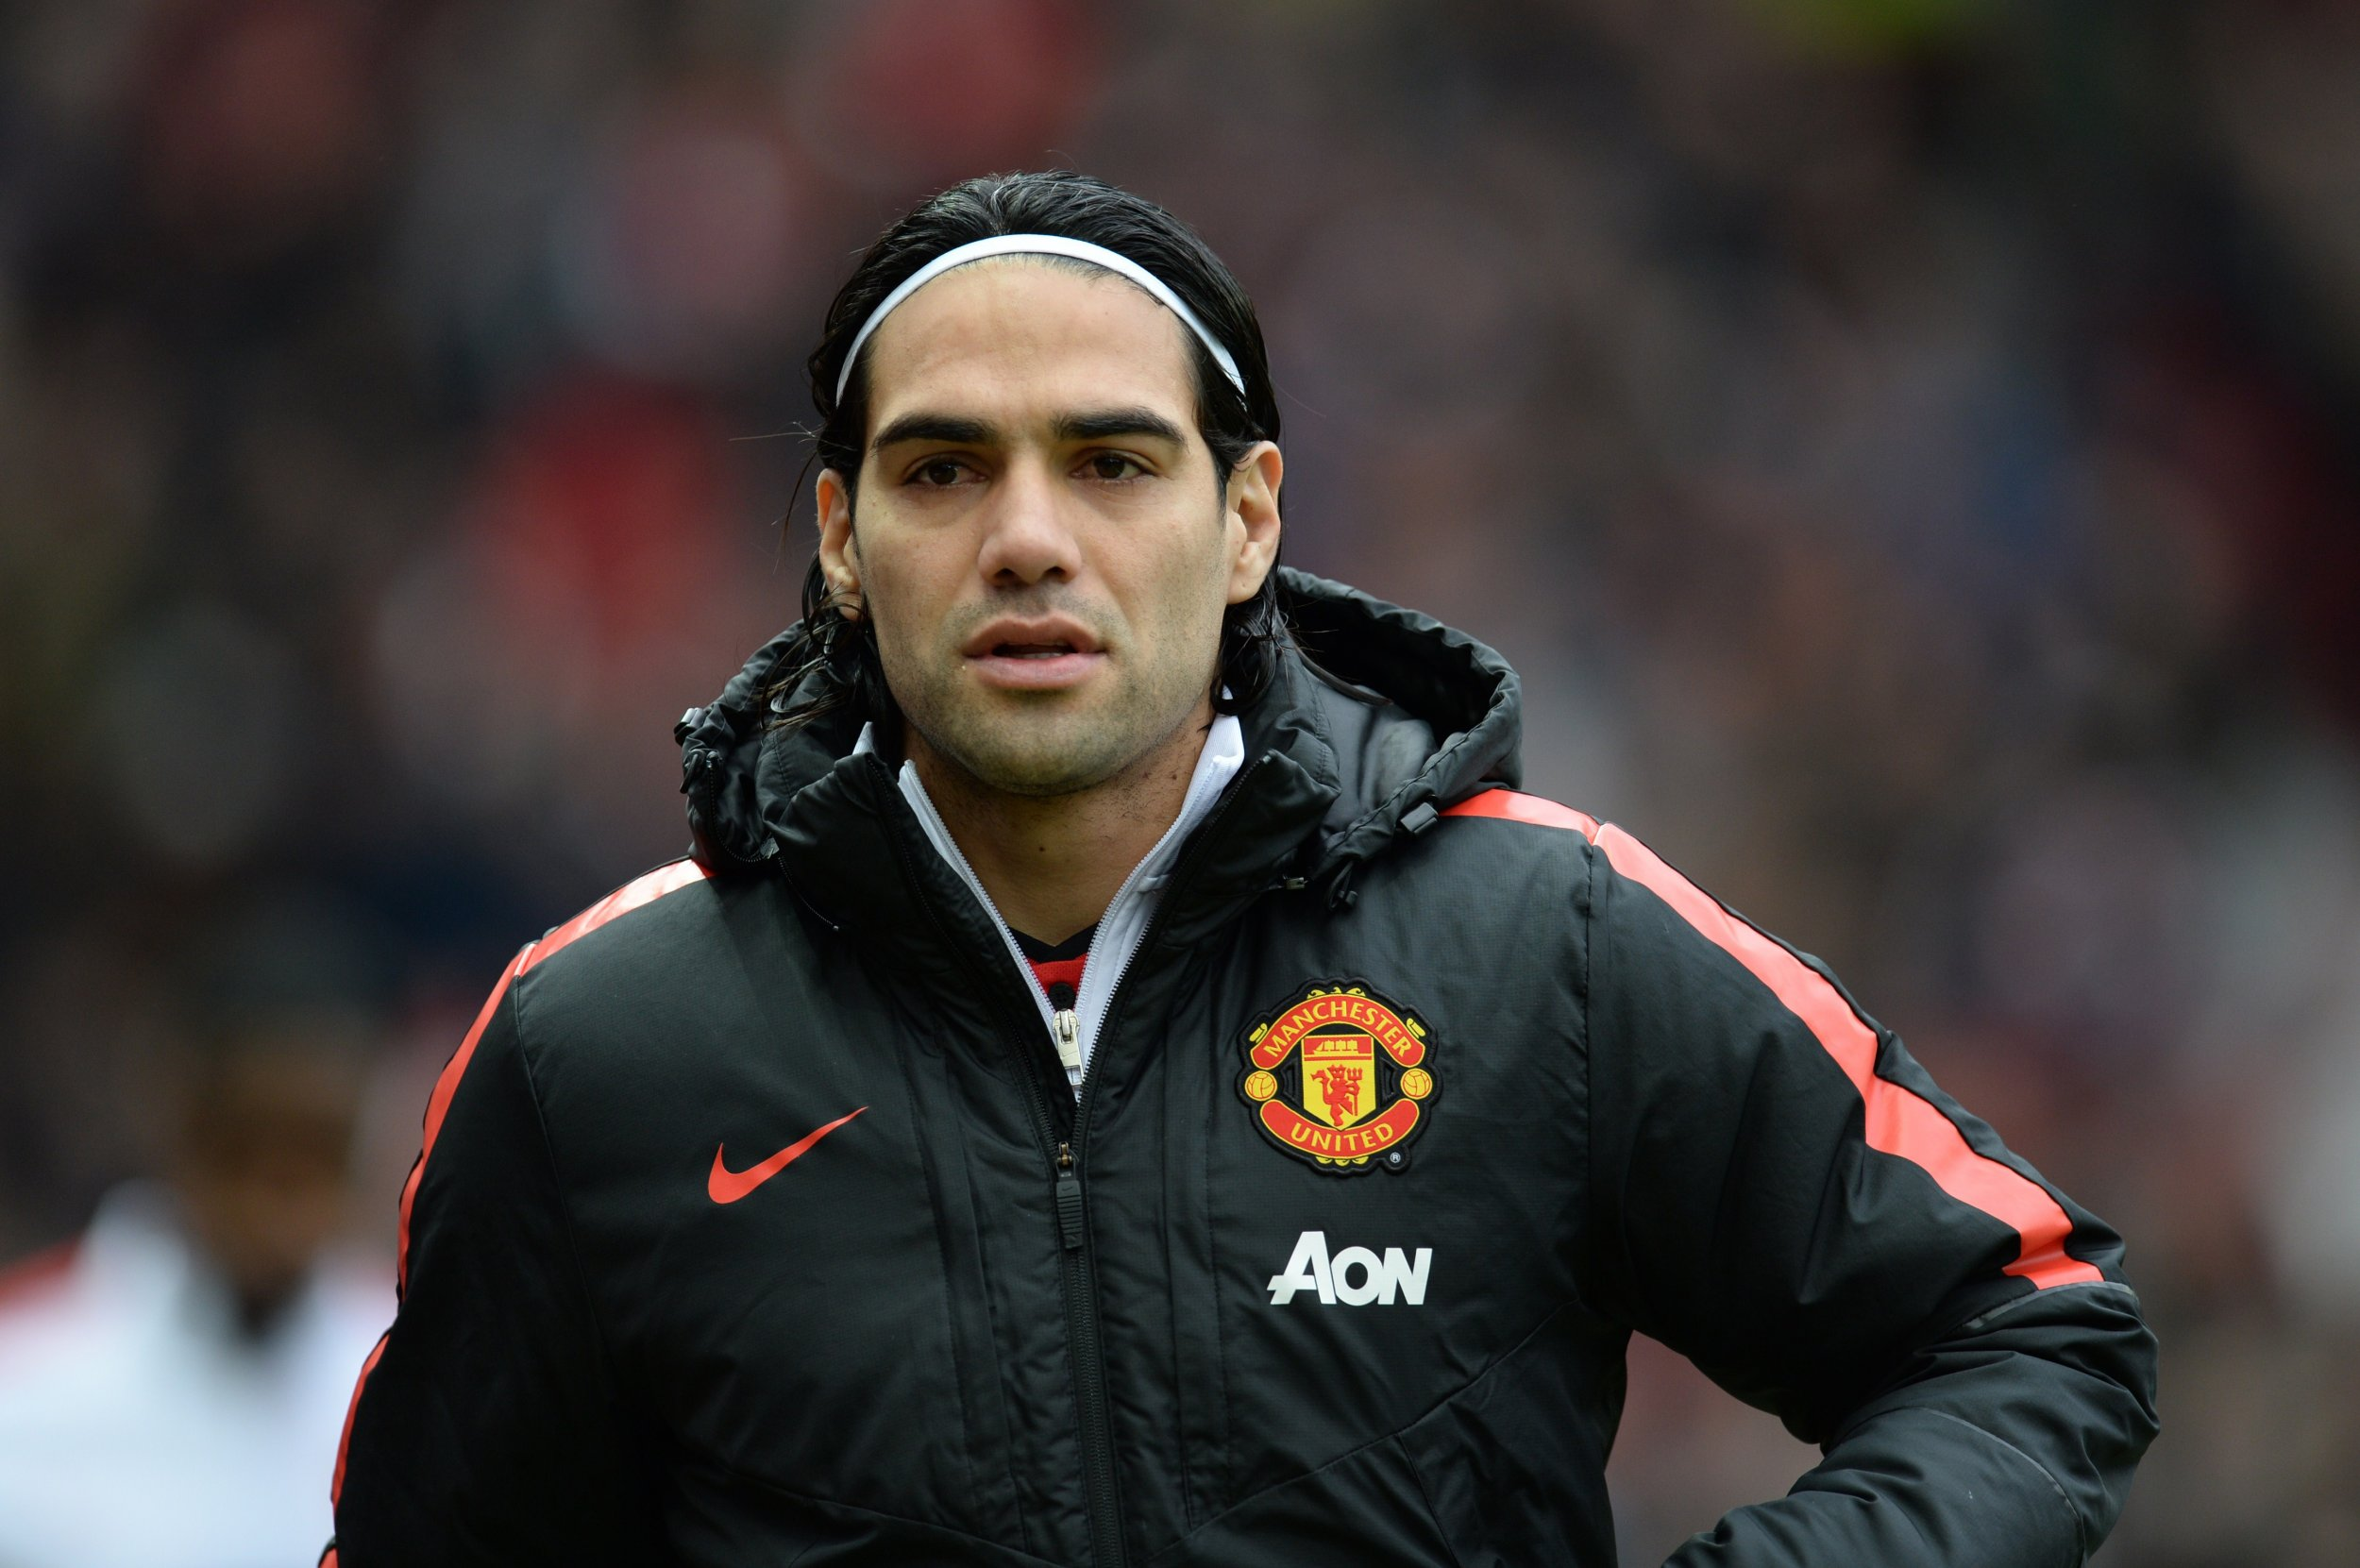 Radamel Falcao is now on loan at Chelsea following a disappointing year at Manchester United.